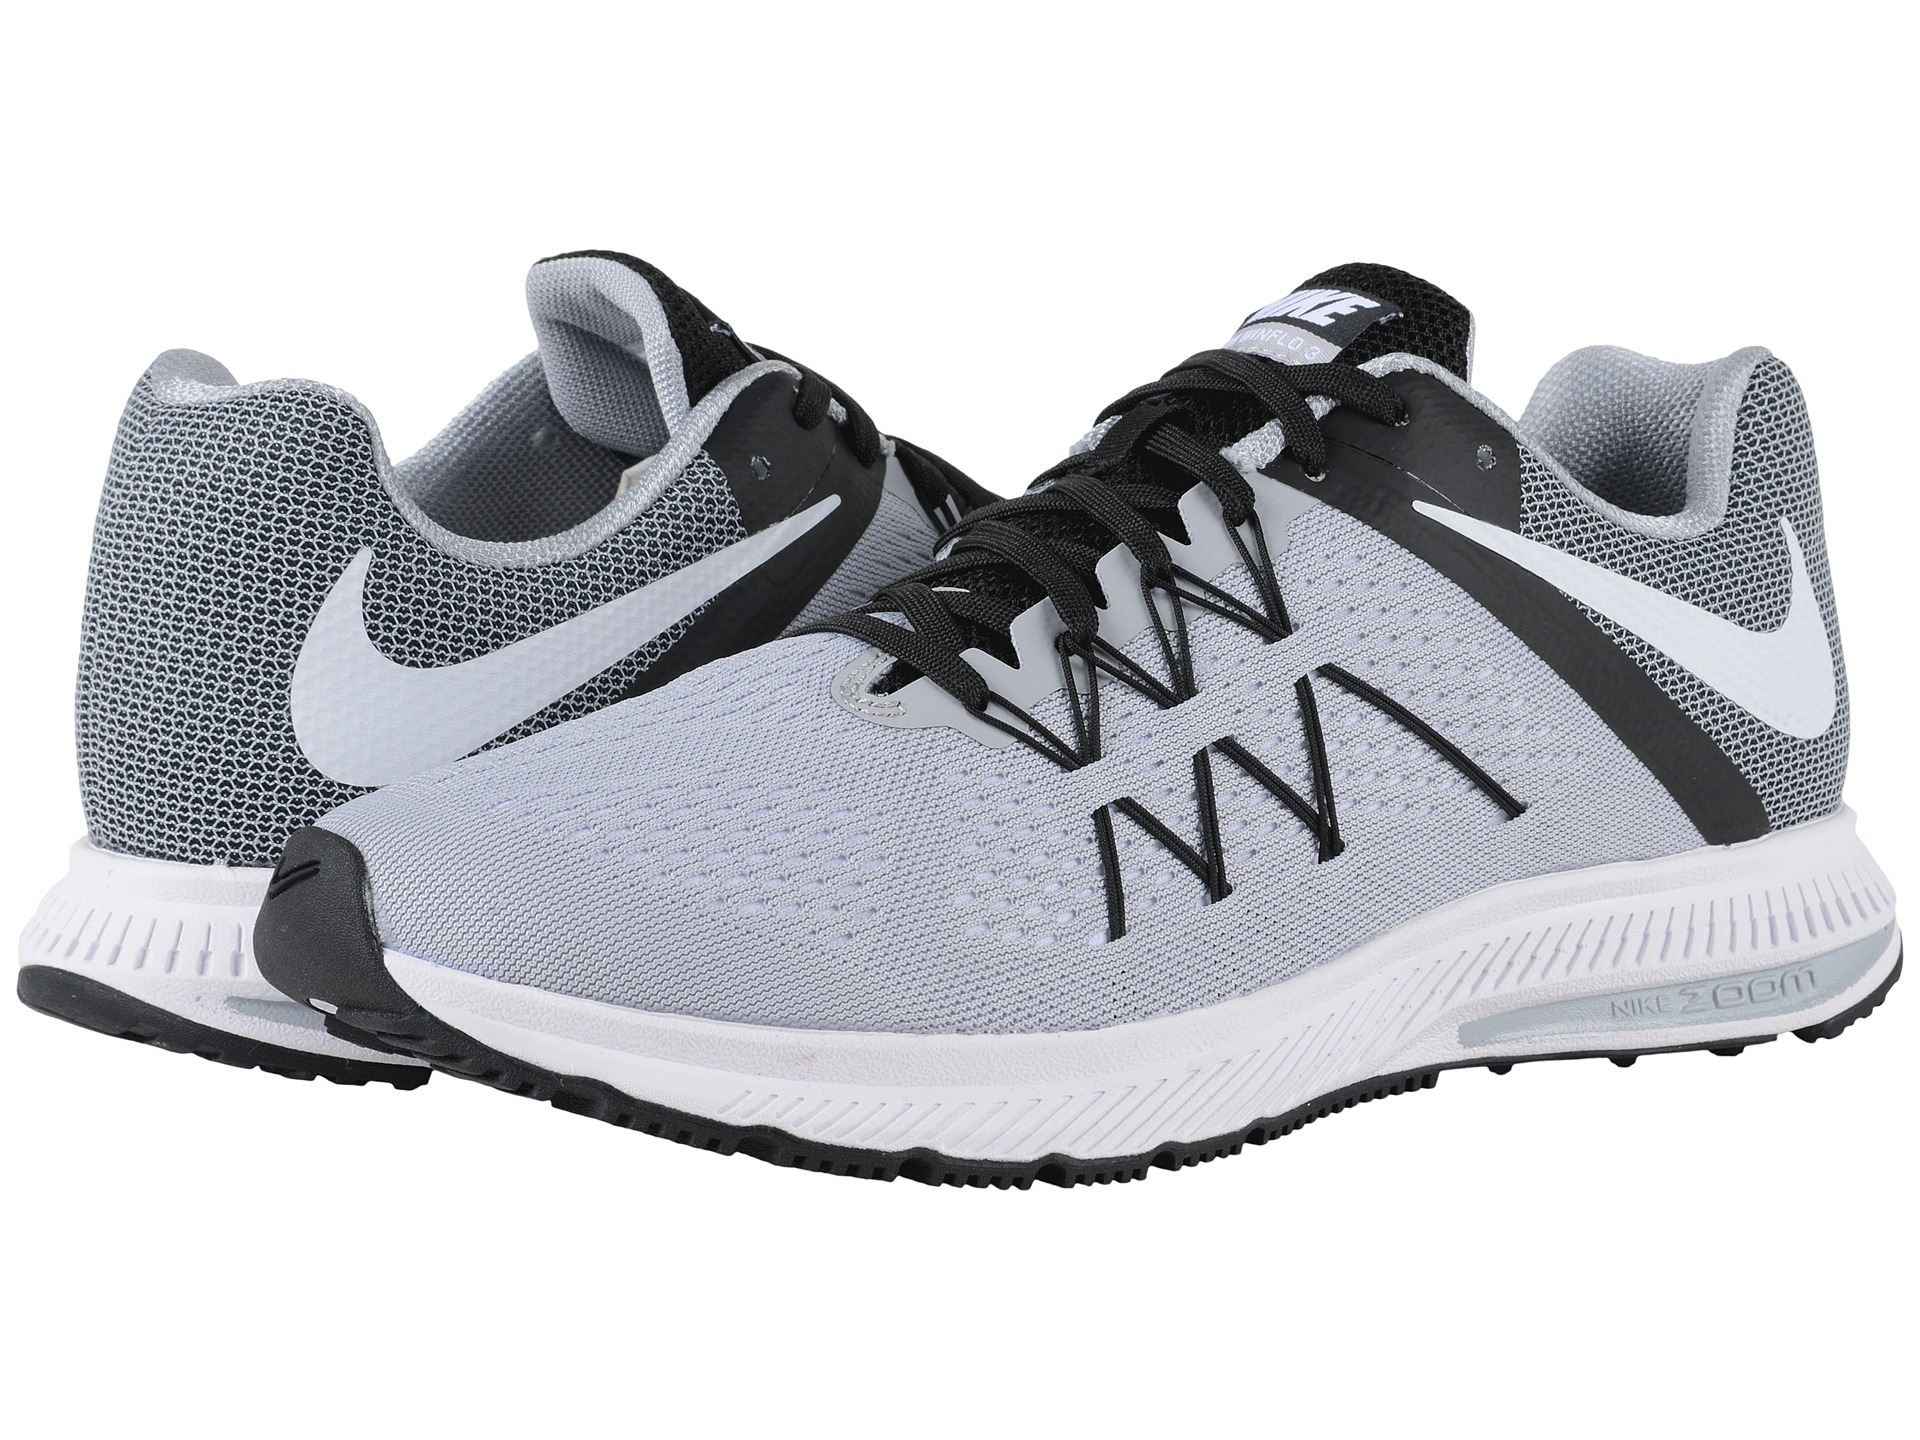 finest selection 0062e f0d03 best price lyst nike zoom winflo 3 in gray for men d7228 d05d2